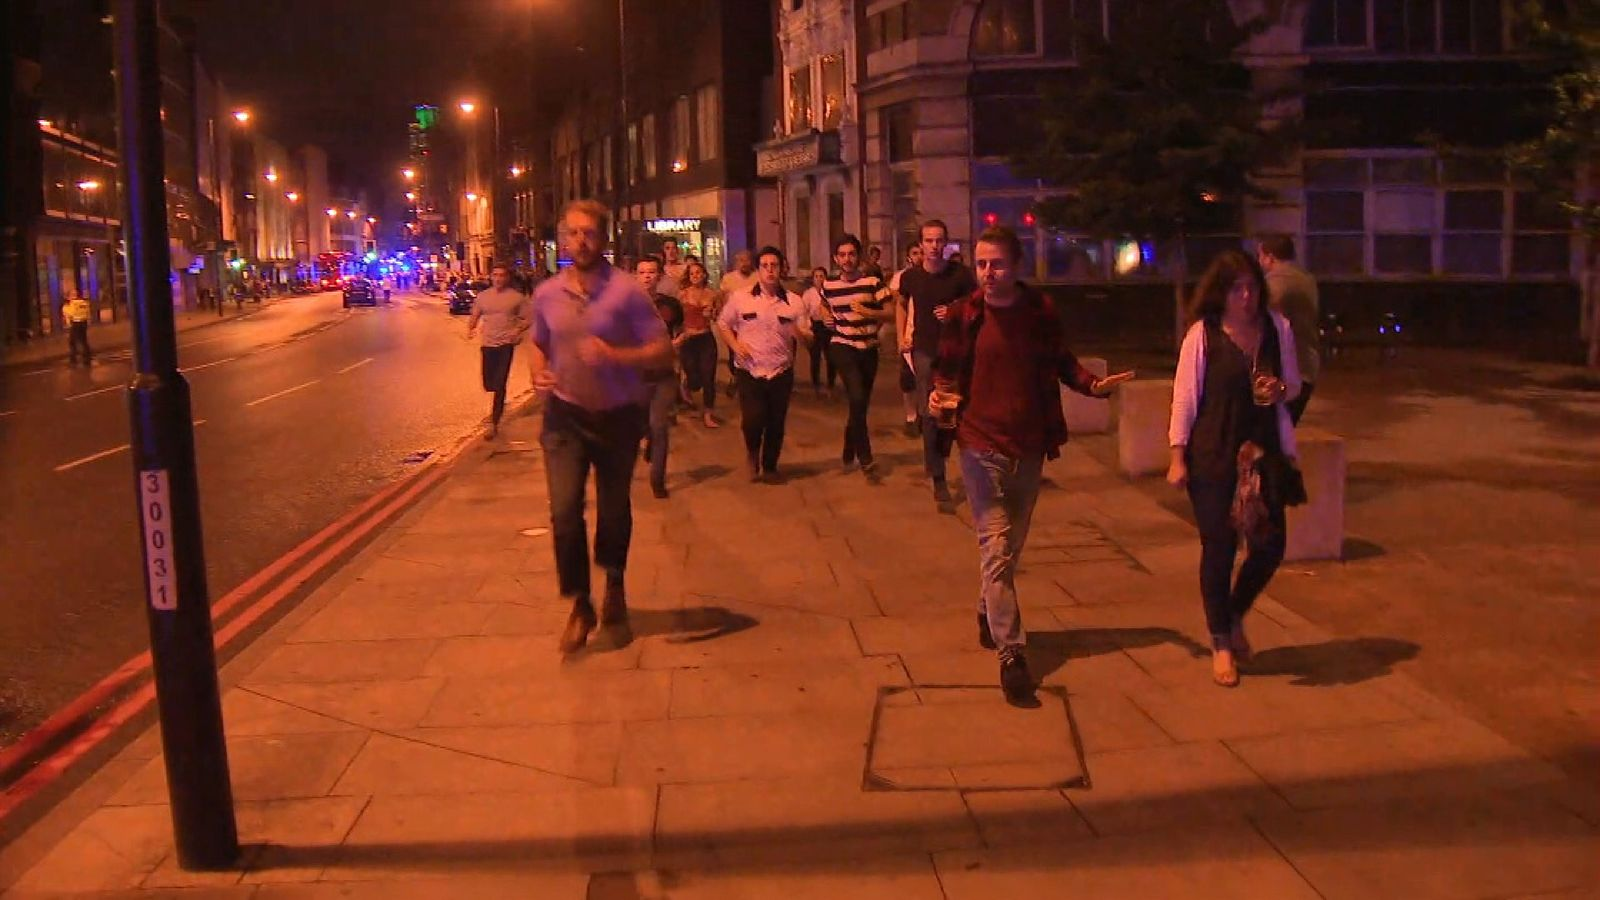 United Kingdom police rush to London Bridge after reports of van hitting pedestrians